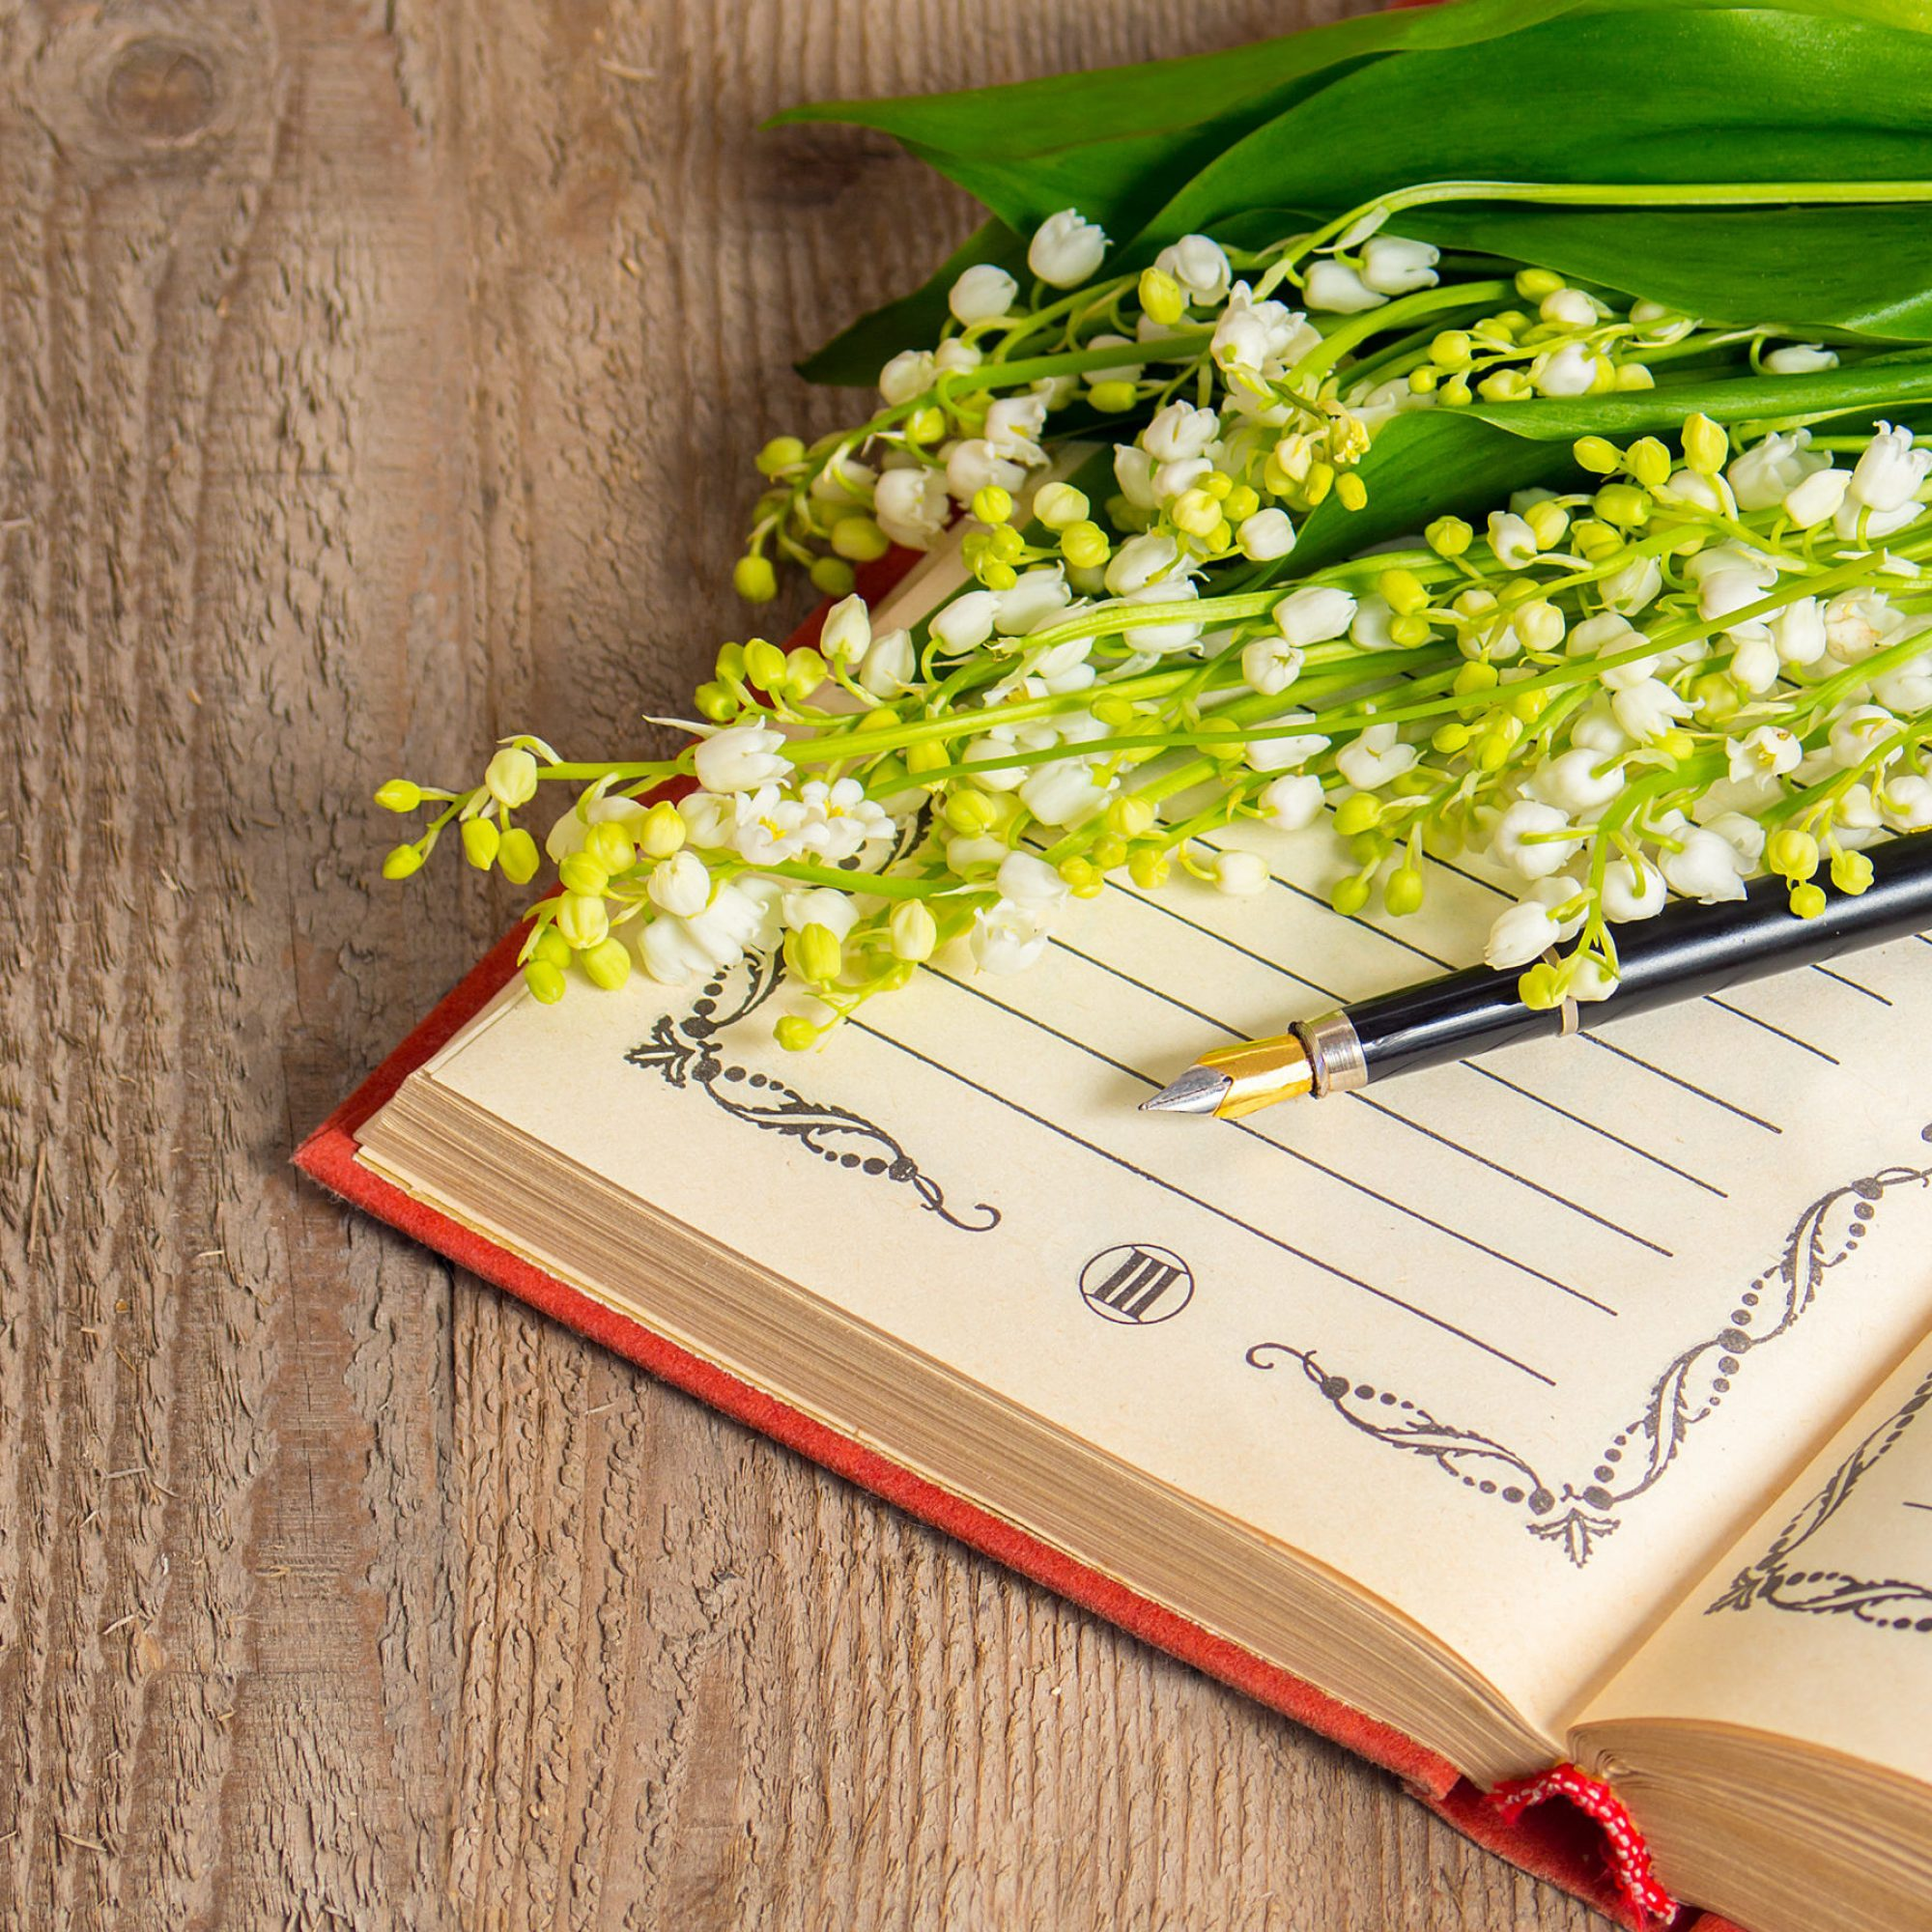 Flowers lily of the valley on the book for records and a pen on a wooden background